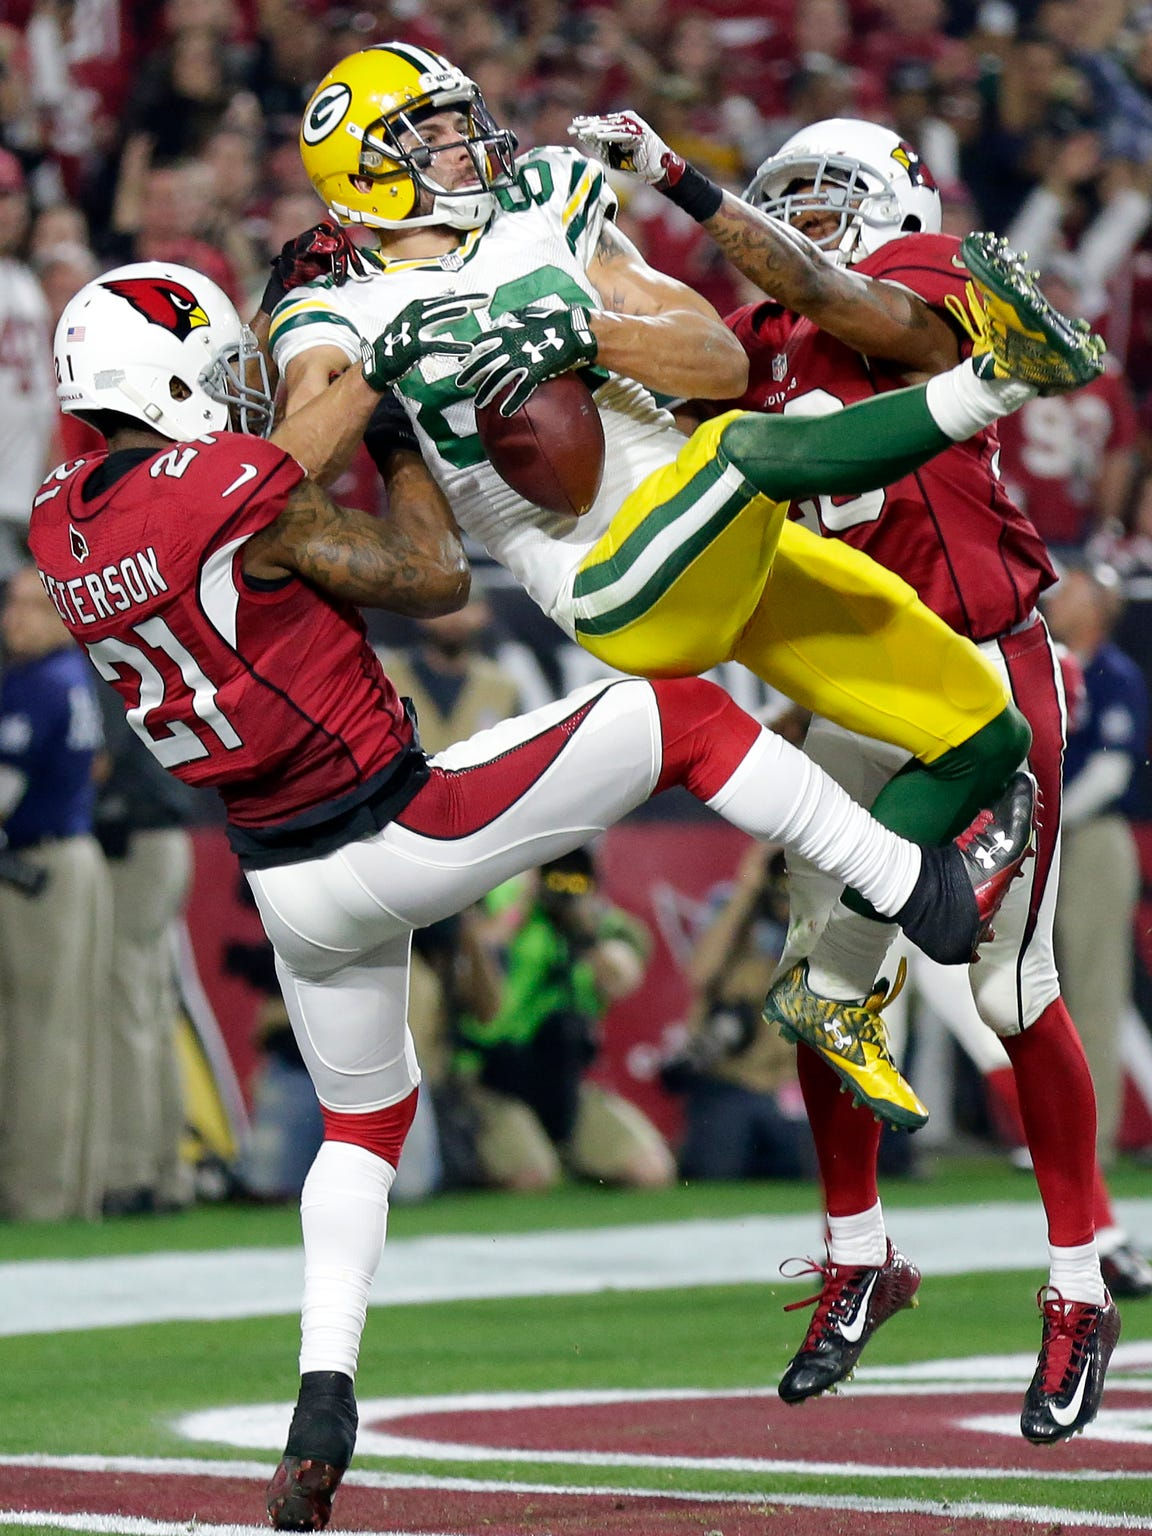 Green Bay Packers receiver Jeff Janis catches a touchdown pass from Aaron Rodgers at the end of regulation tying the game and forcing overtime.